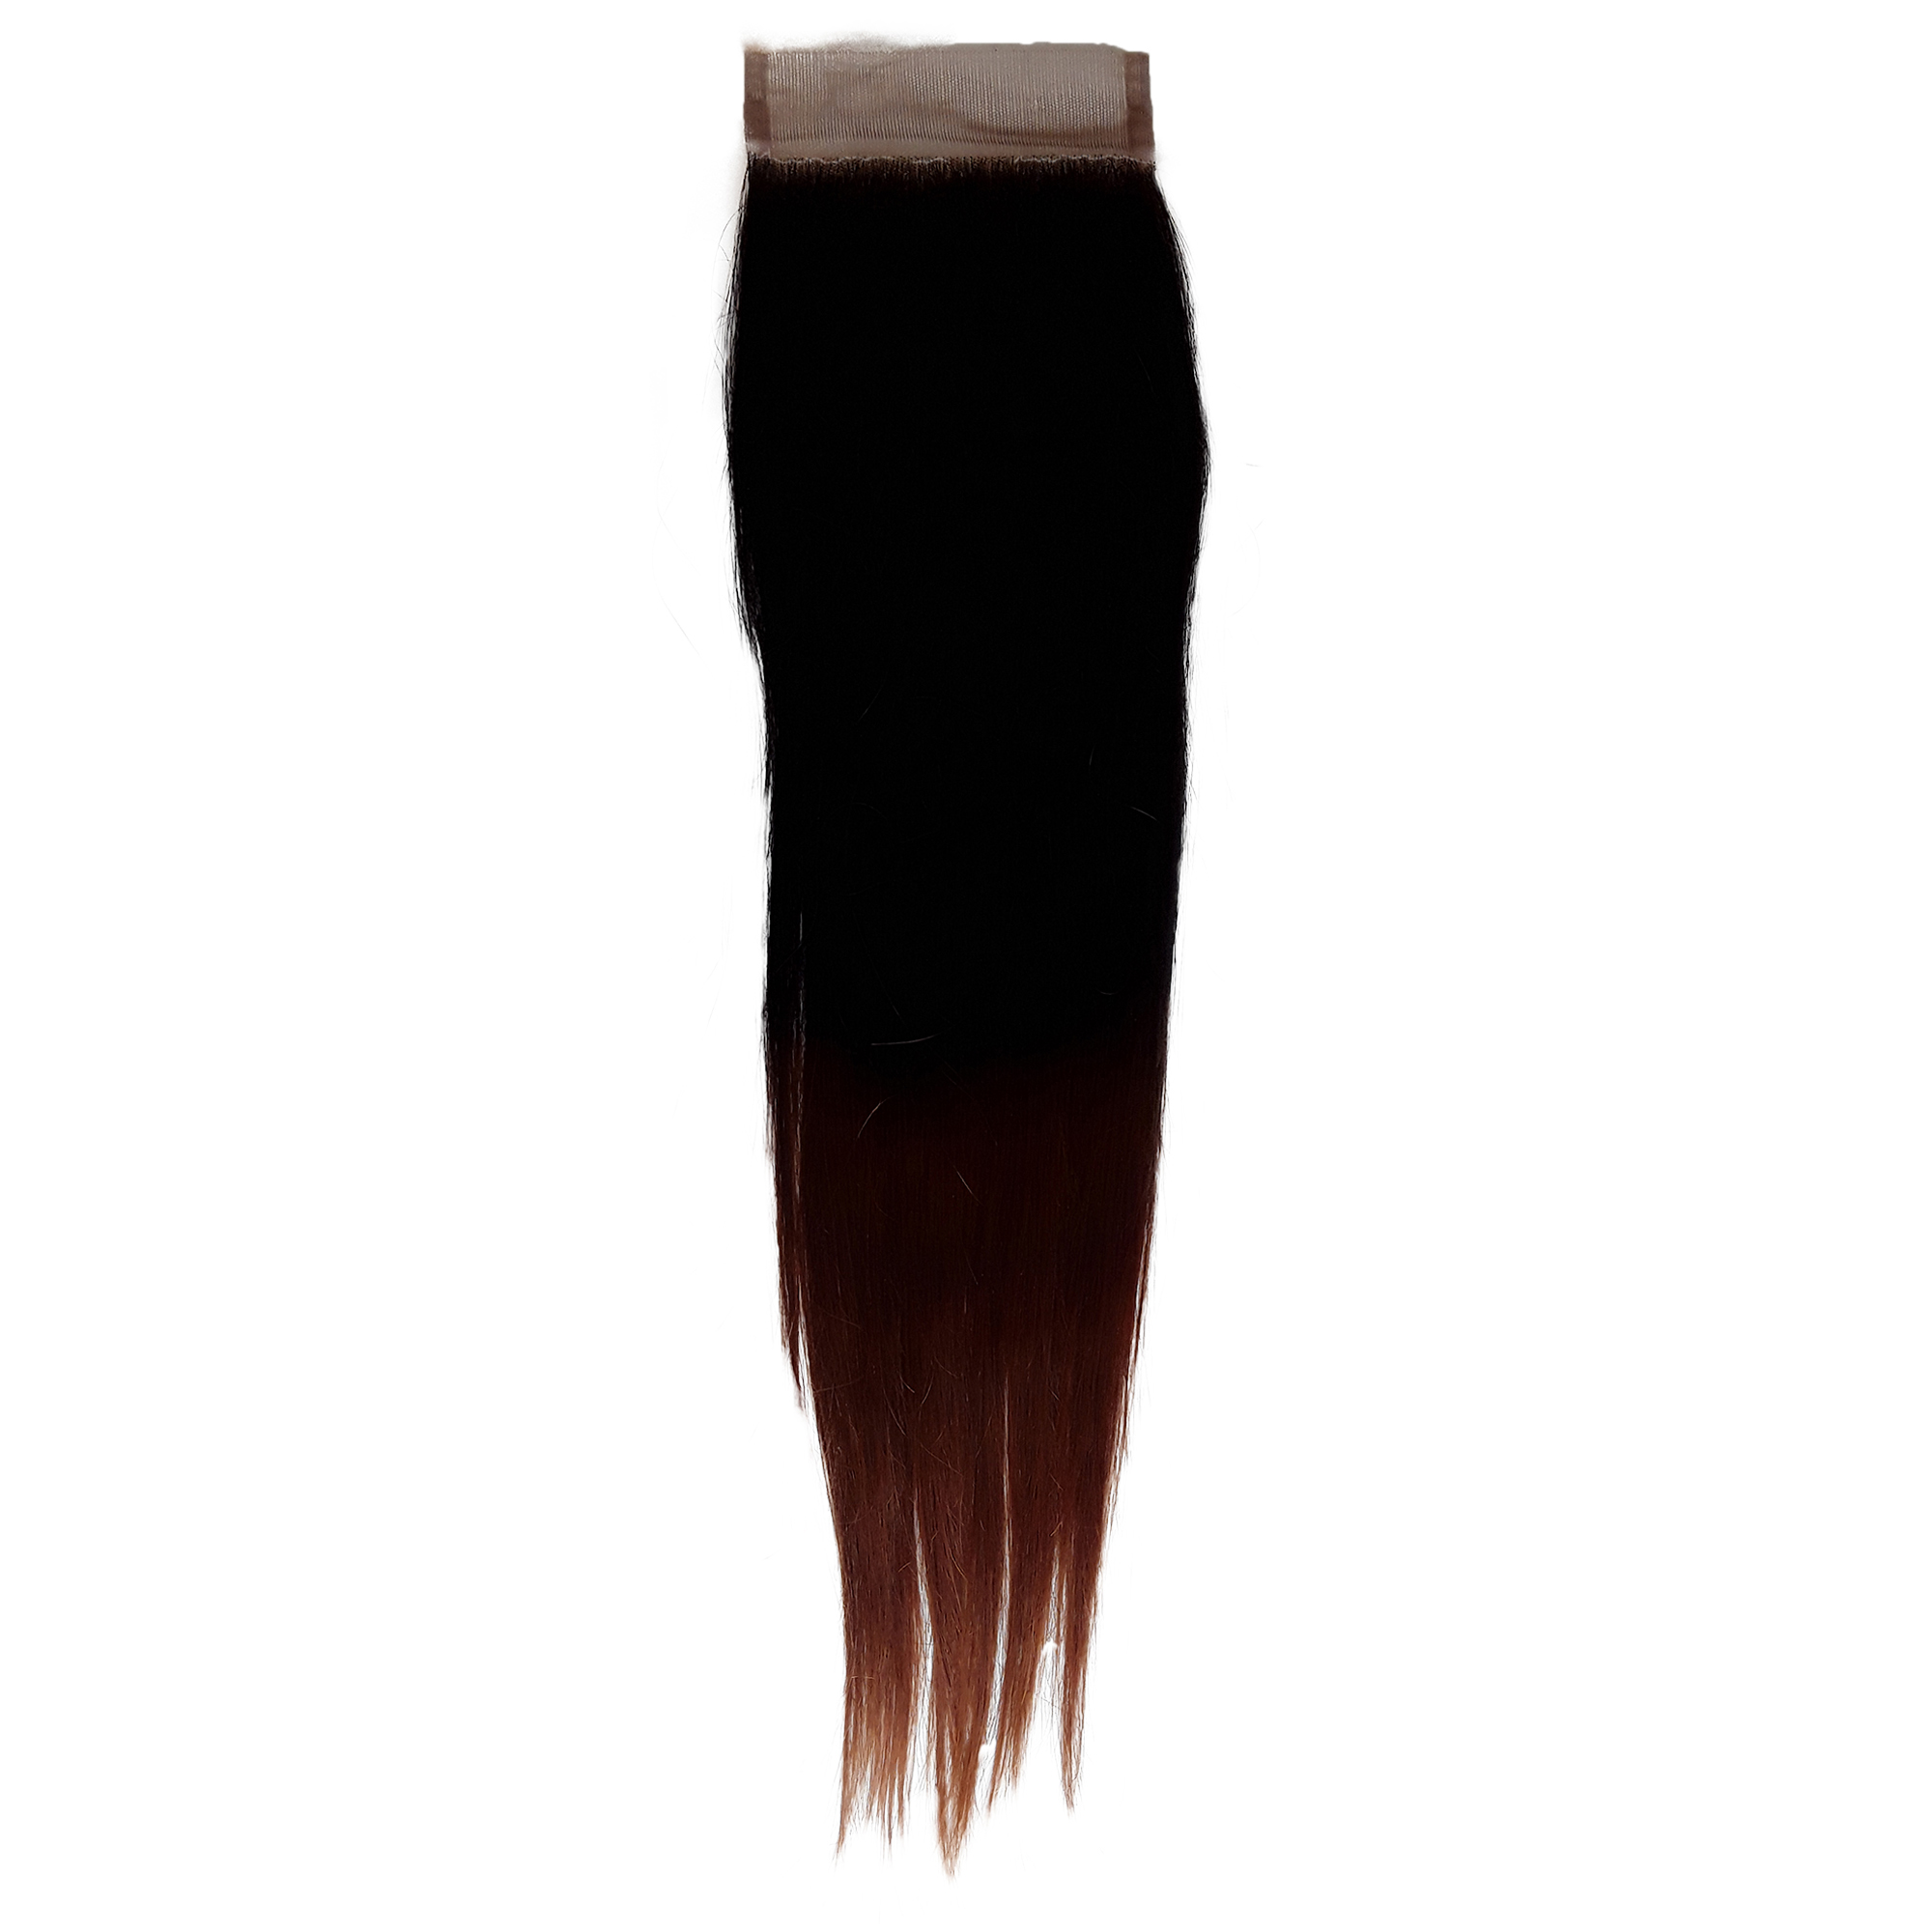 (Peruvian 100% human hair straight 100g per hair) 100% Unprocessed Human Remy Peruvian Hair, Lace Closure (4×4″) straight colour 1B/30, Highest Quality Rating of 8A, Sizes 12 inches to 18 inches. If you're looking for natural, quality hair to fill…